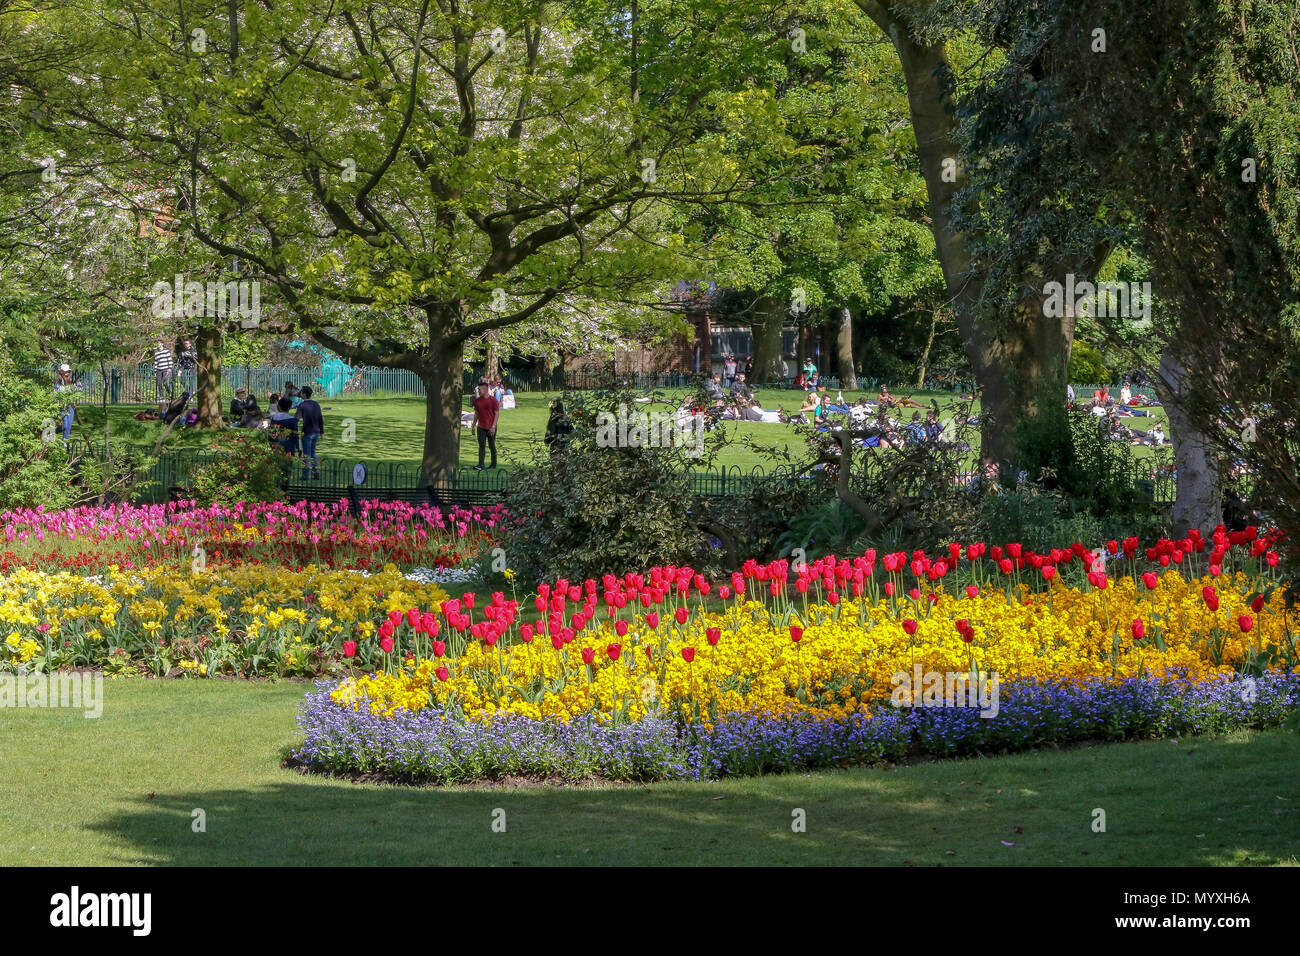 Bright coloured flower beds in a UK park with people relaxing on a suuny day. - Stock Image